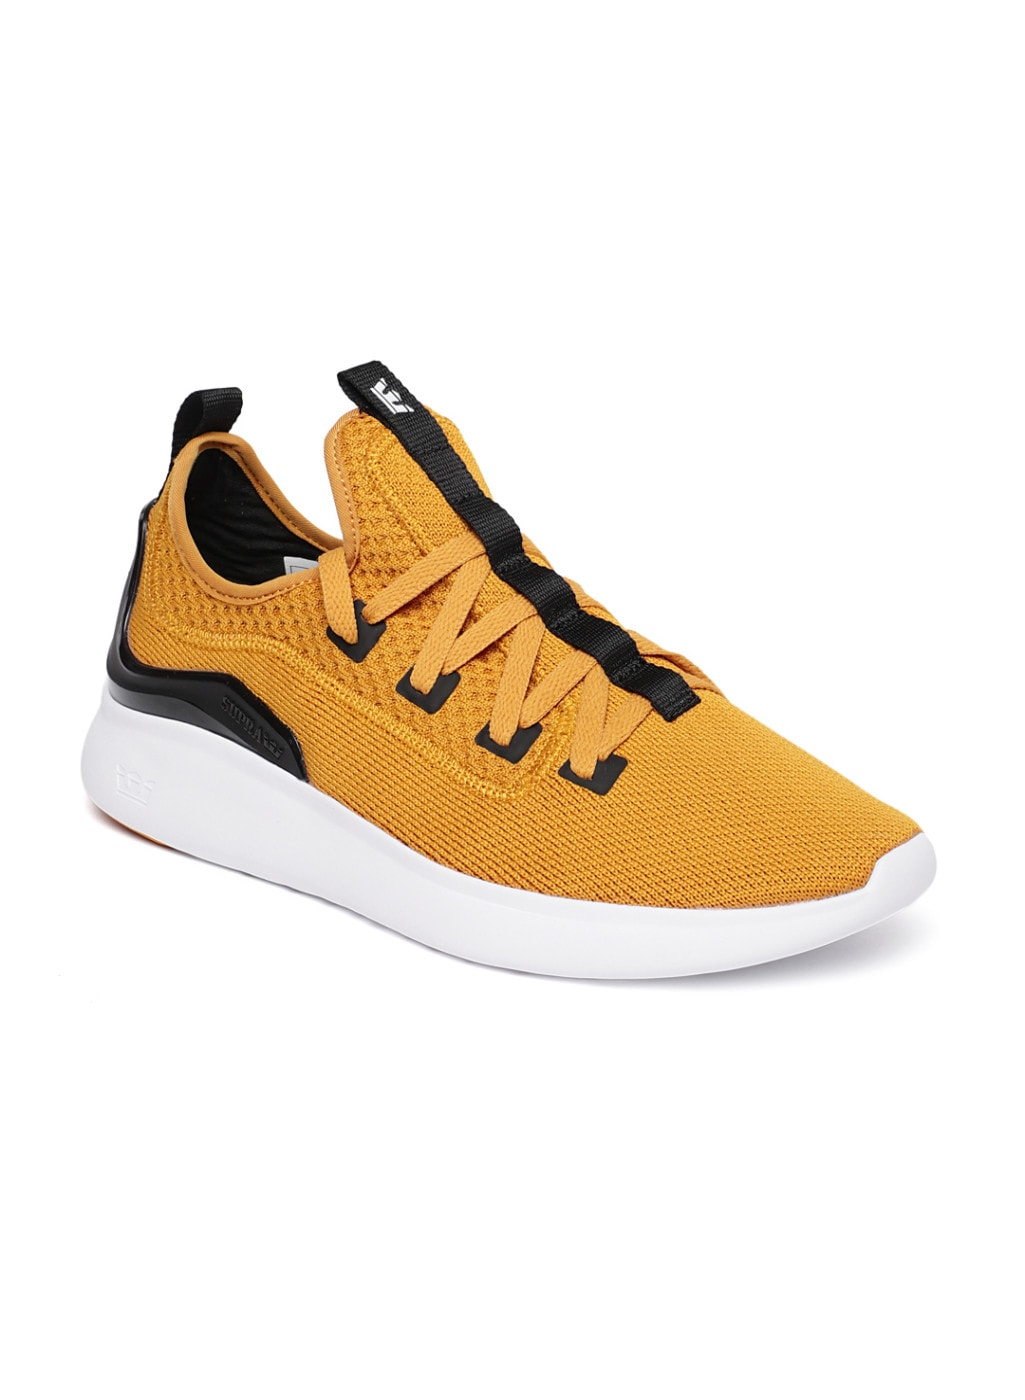 6726832fae94 Yellow Men Shoes - Buy Yellow Men Shoes online in India - Jabong